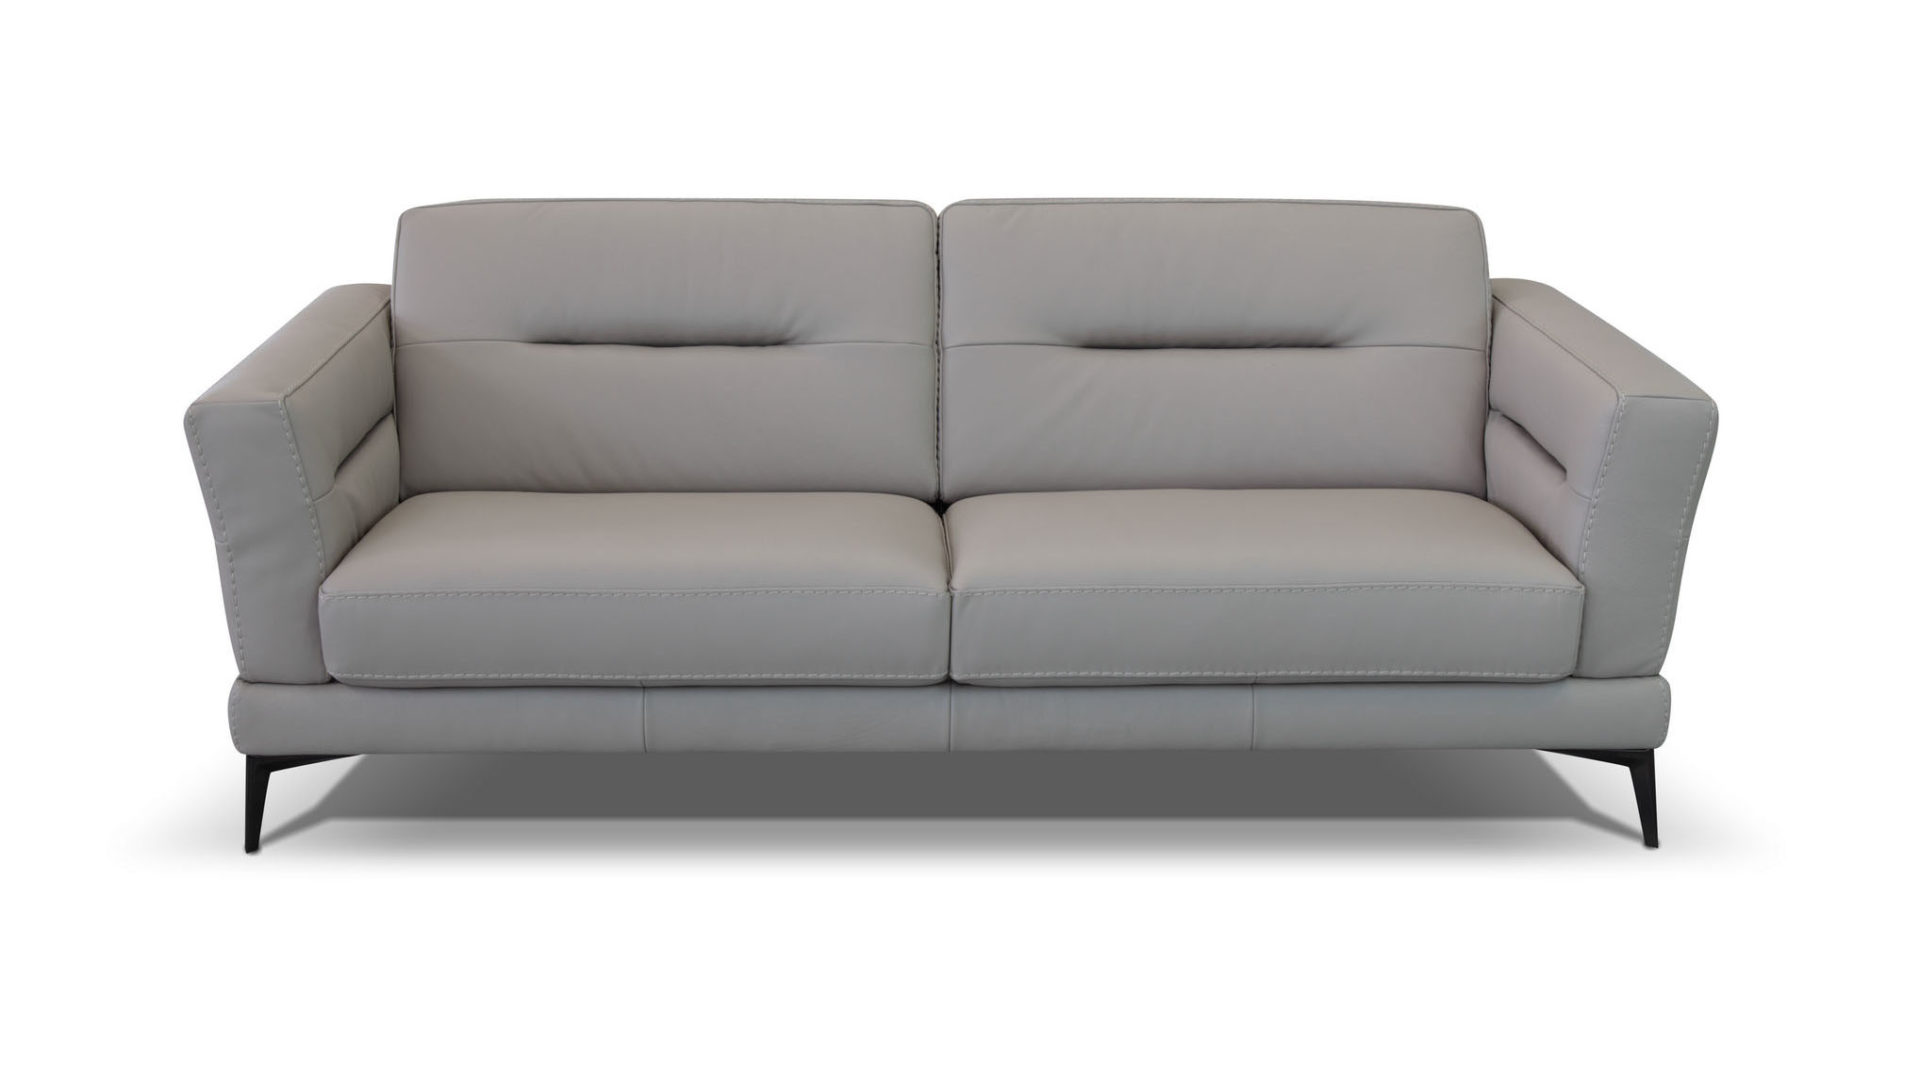 cloud 2 sectional sofa cleaning services sofas and sectionals  braccisofas